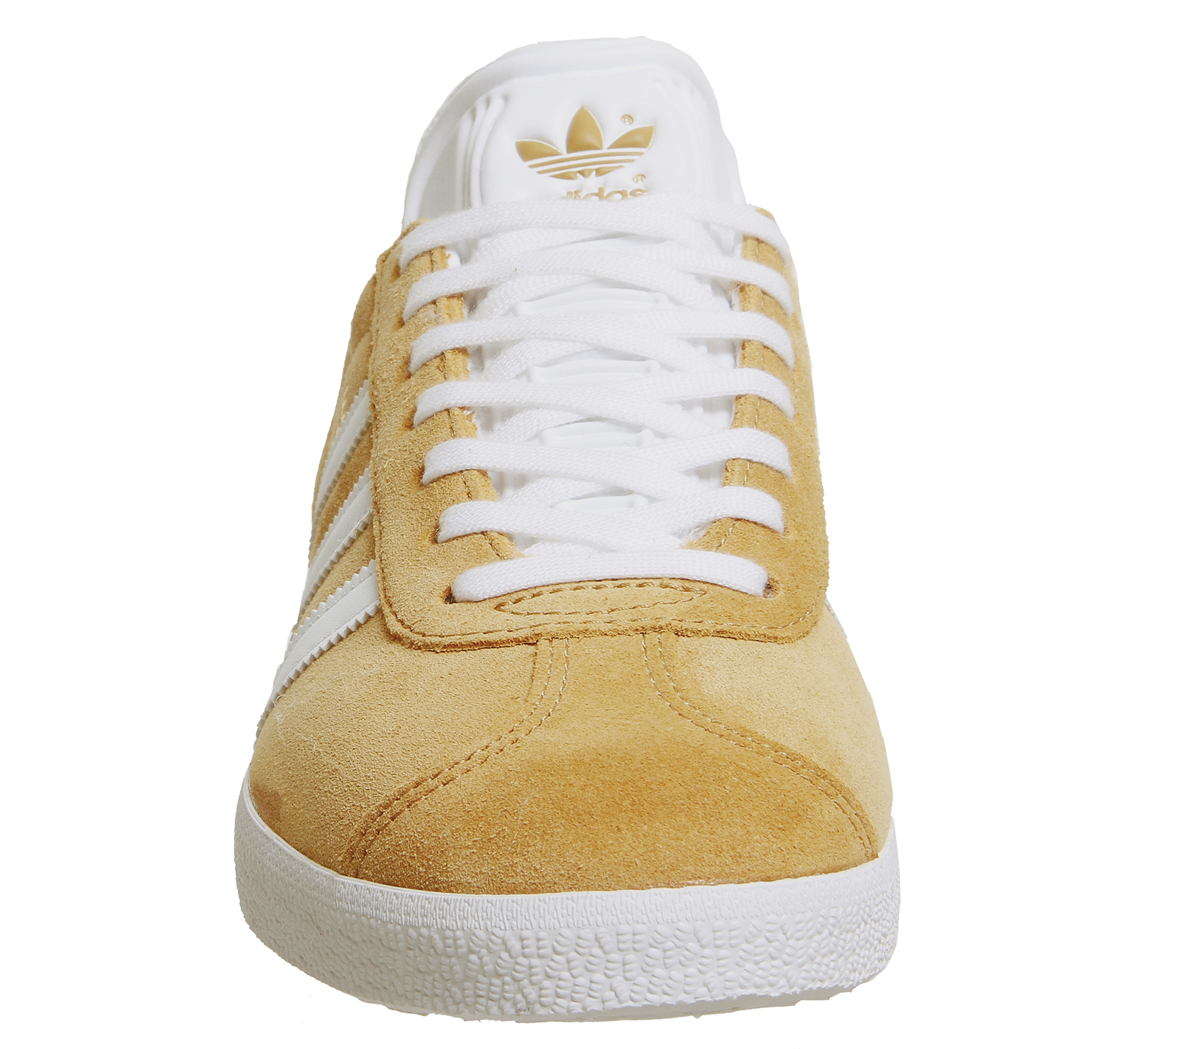 Hommes  Adidas Gazelle Trainers MESA blanc  Hommes Trainers Chaussures d79e60